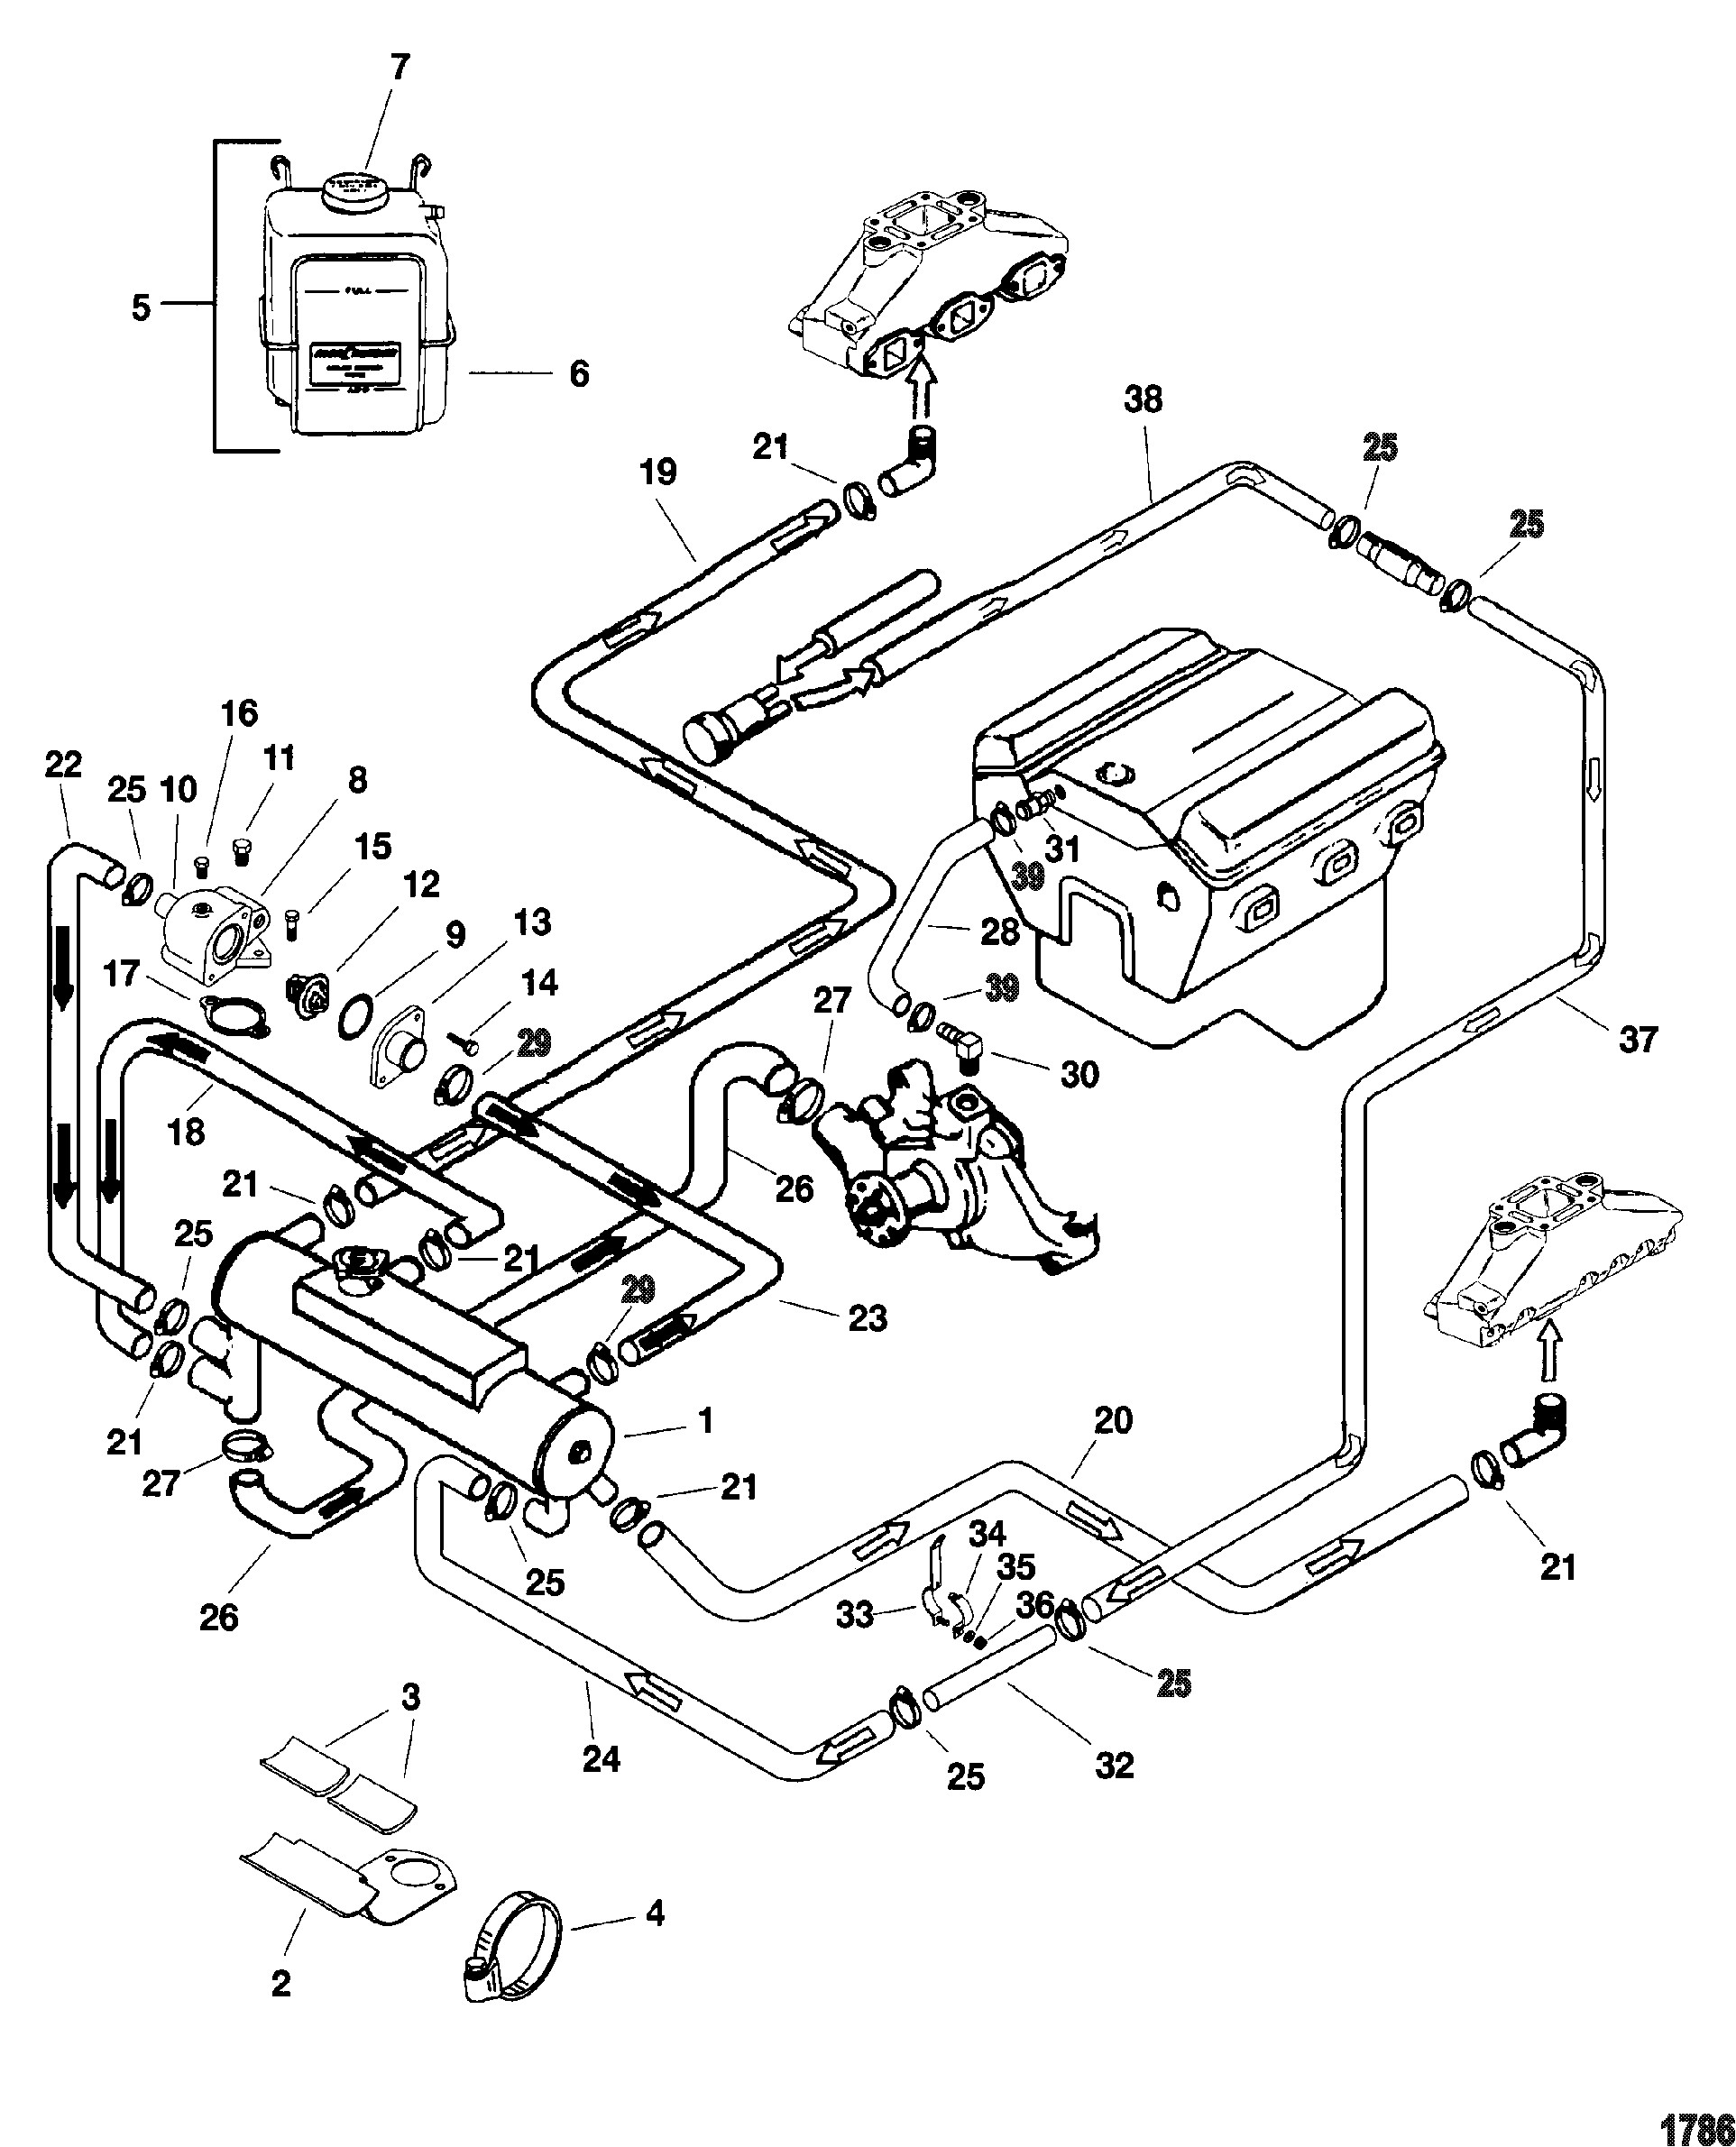 hight resolution of 1992 jeep wrangler 2 5 engine diagram auto wiring diagrams rh bazar co 42 jeep